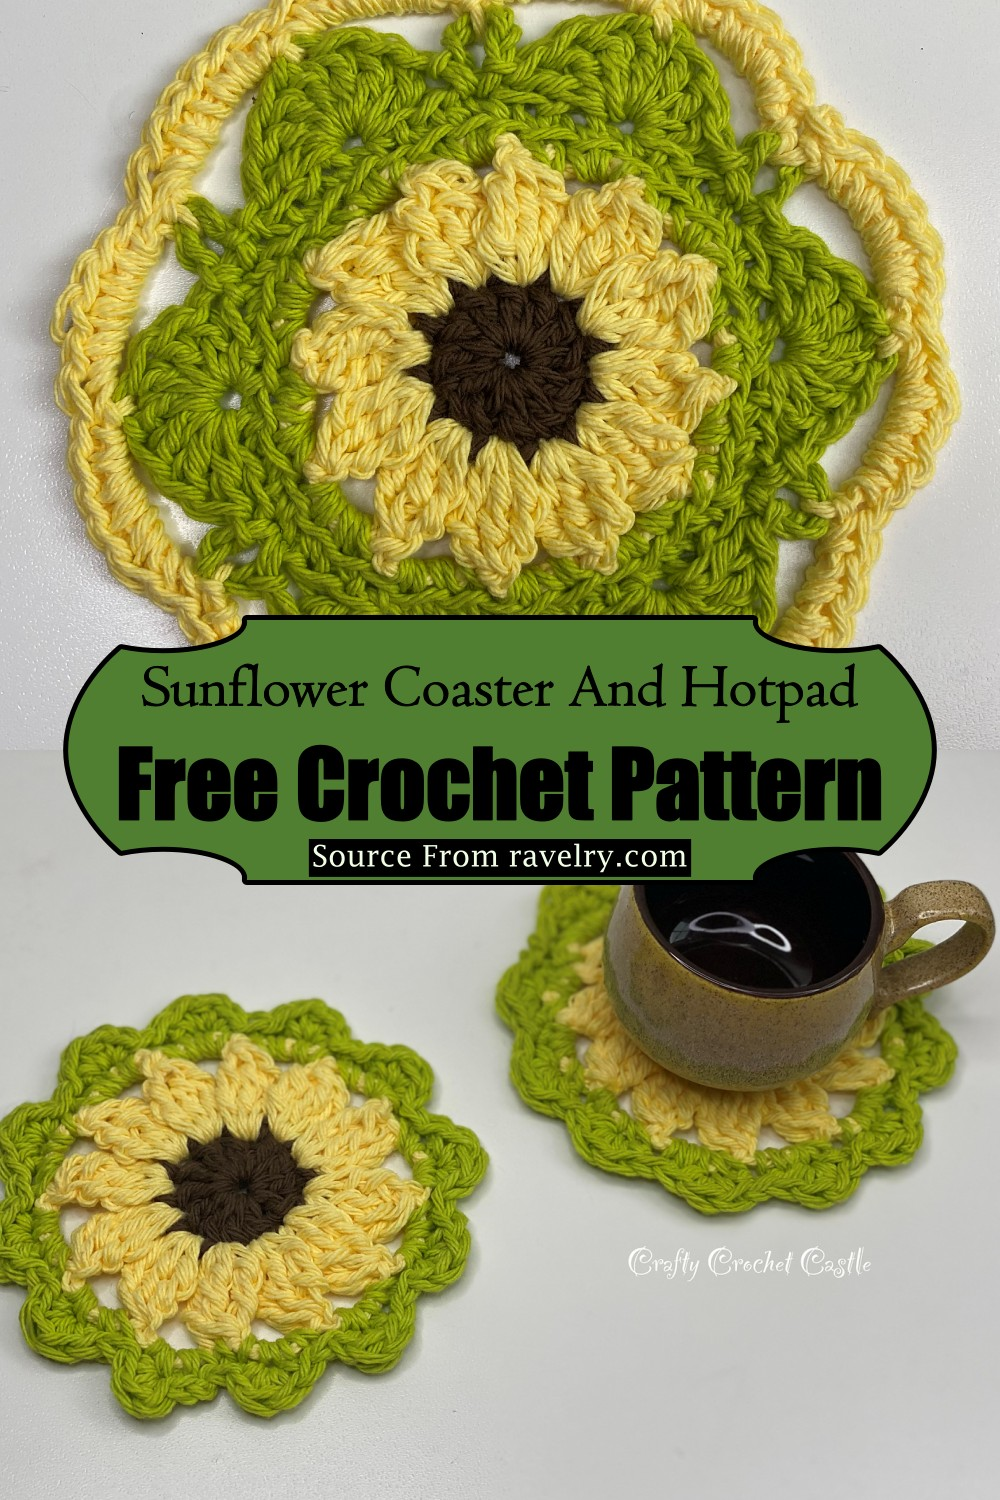 Coaster And Hotpad Pattern